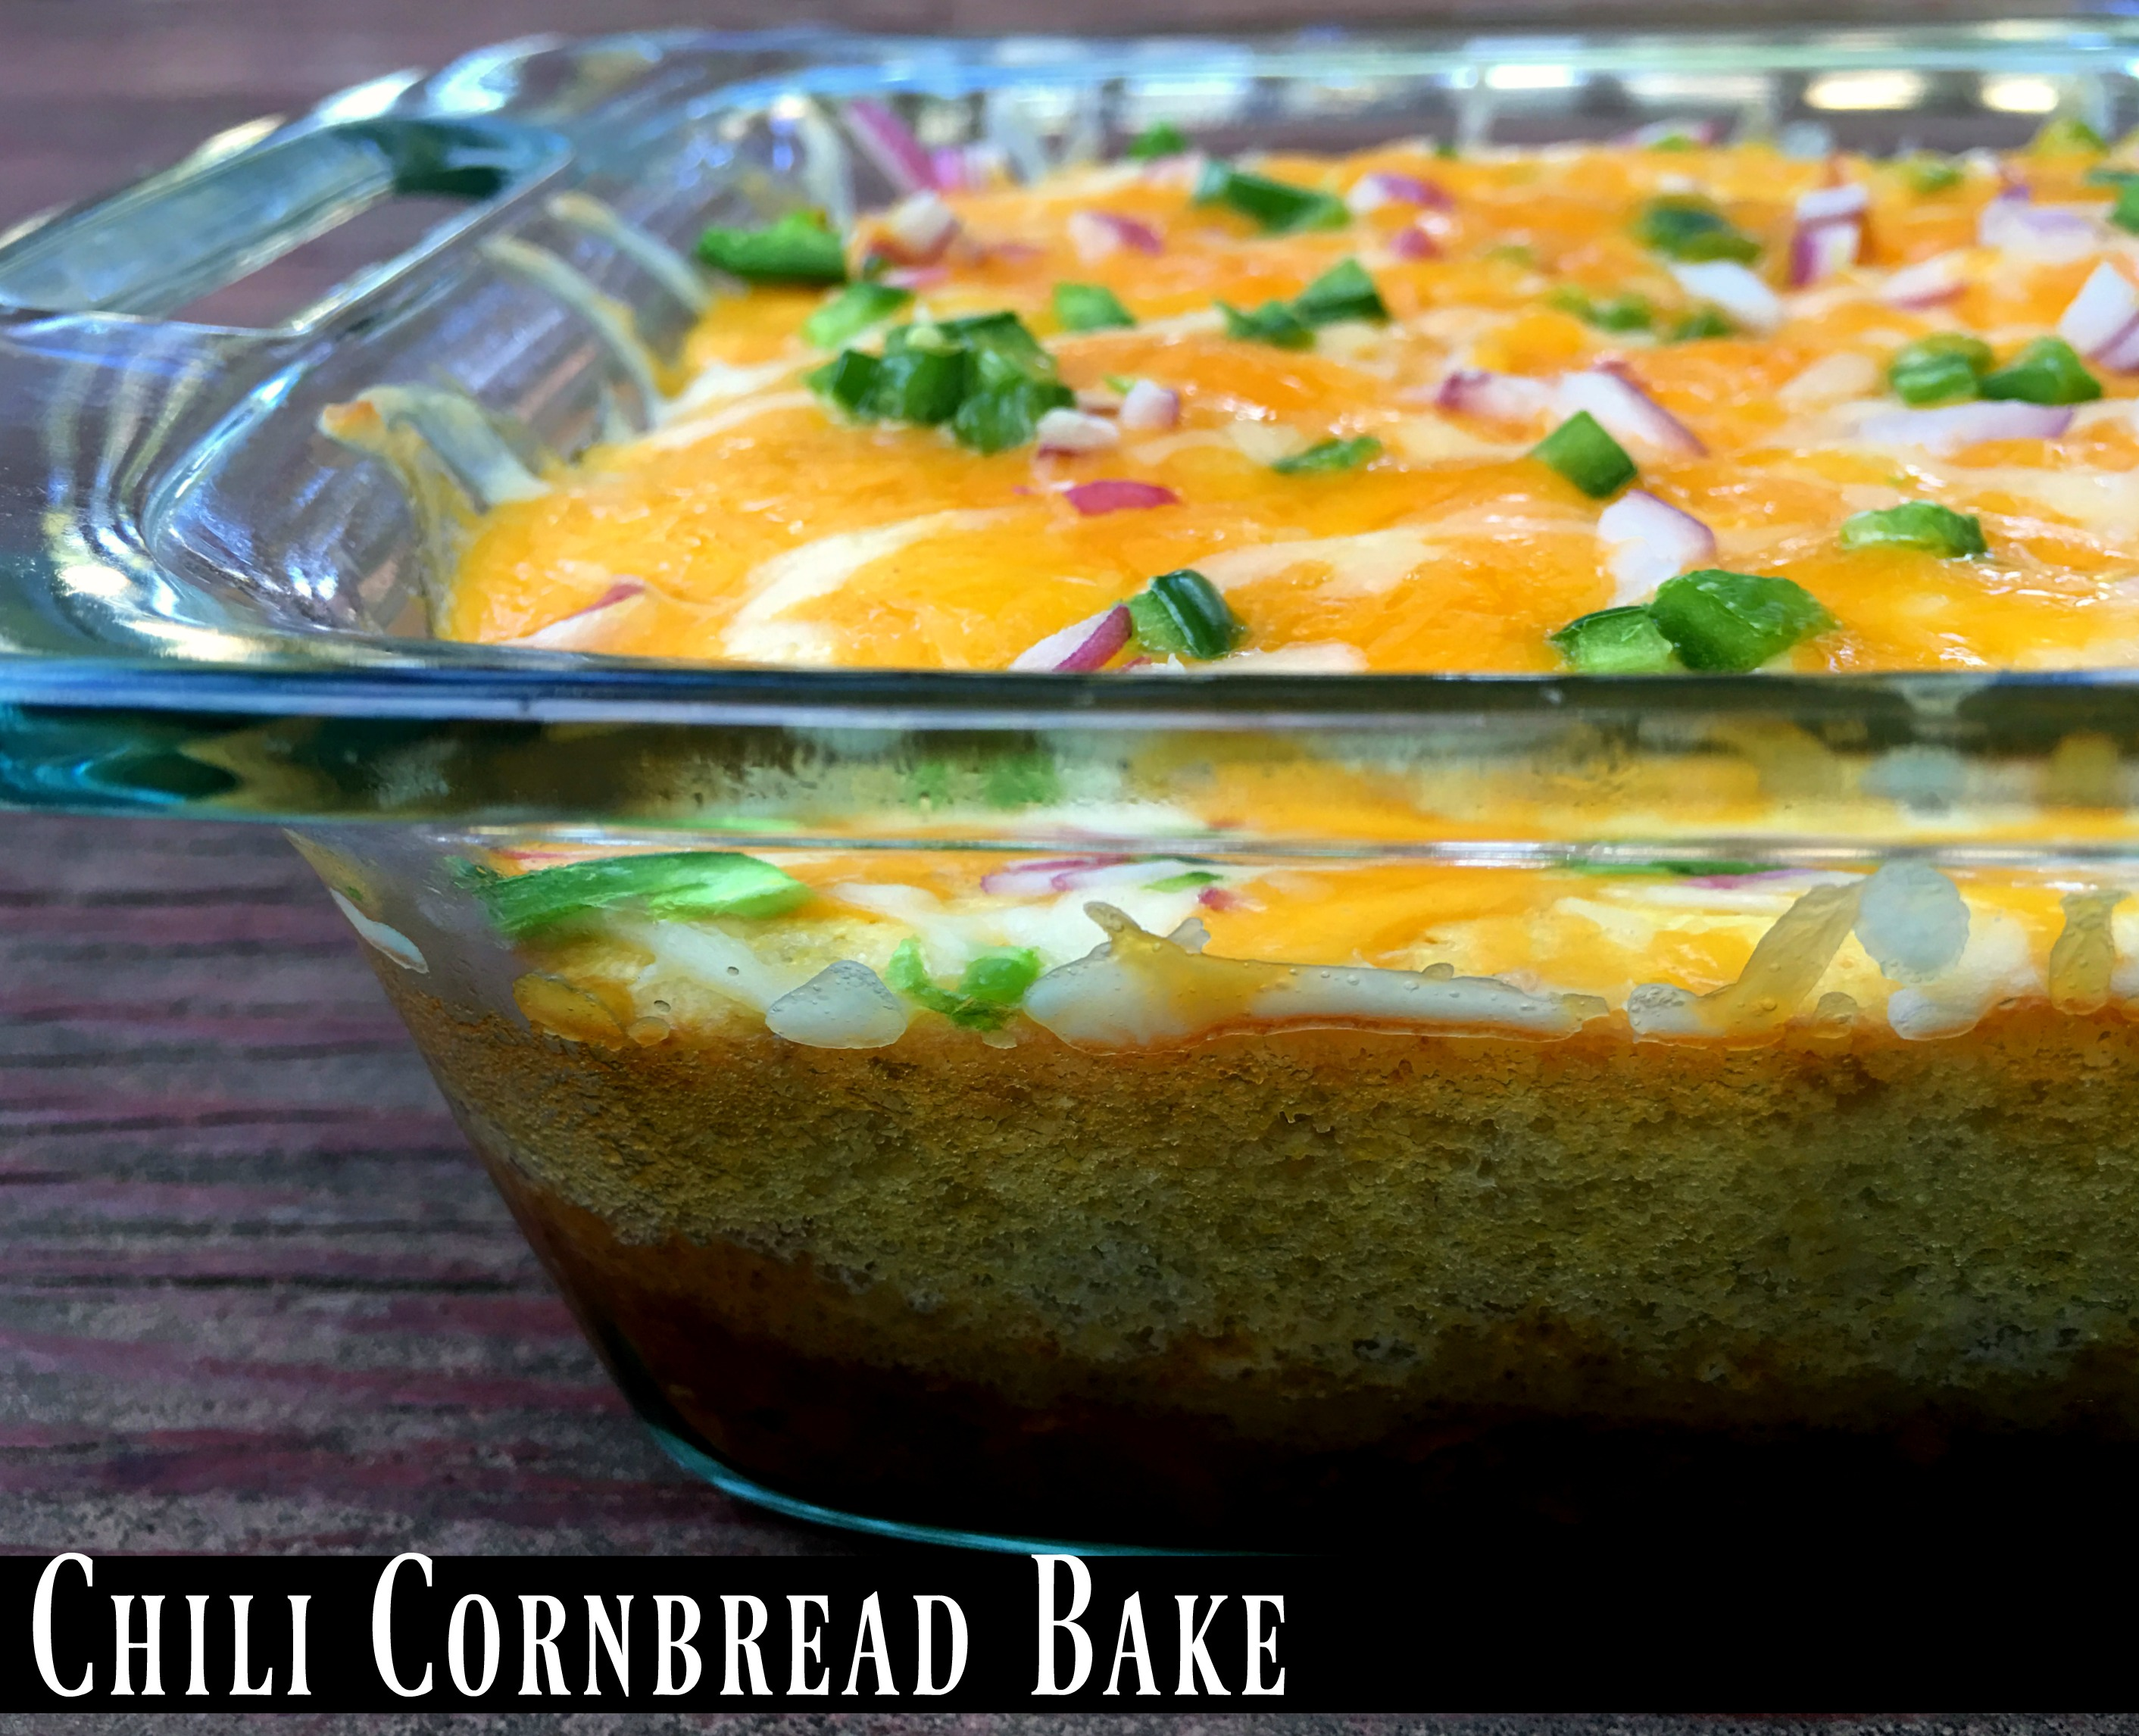 Leftover Chili Cornbread Bake